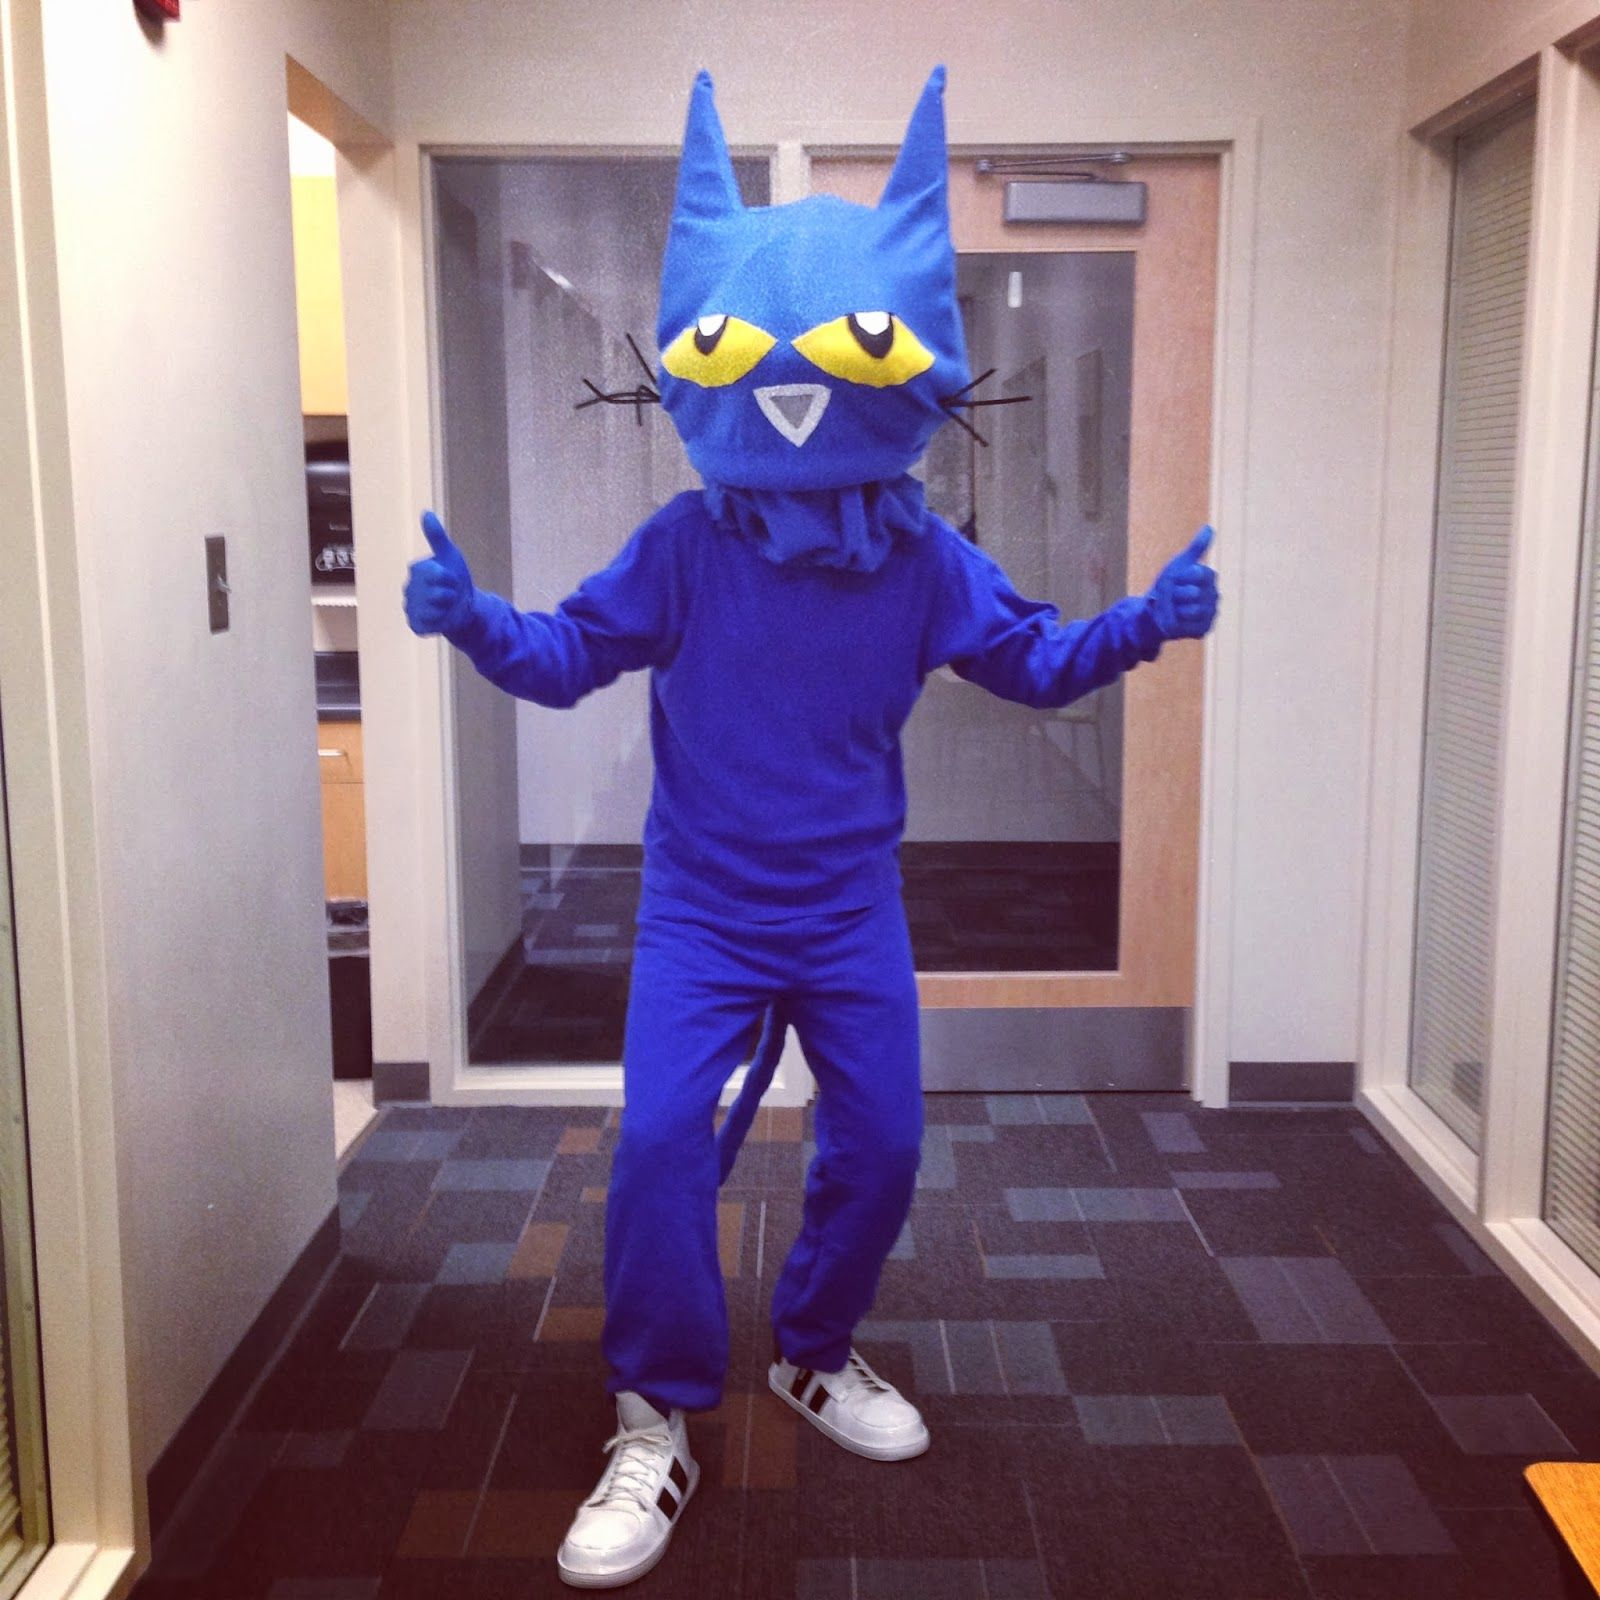 I recently made a pete the cat costume for a storybook character do it yourself pete the cat costume story book costume for williams halloween parade solutioingenieria Gallery